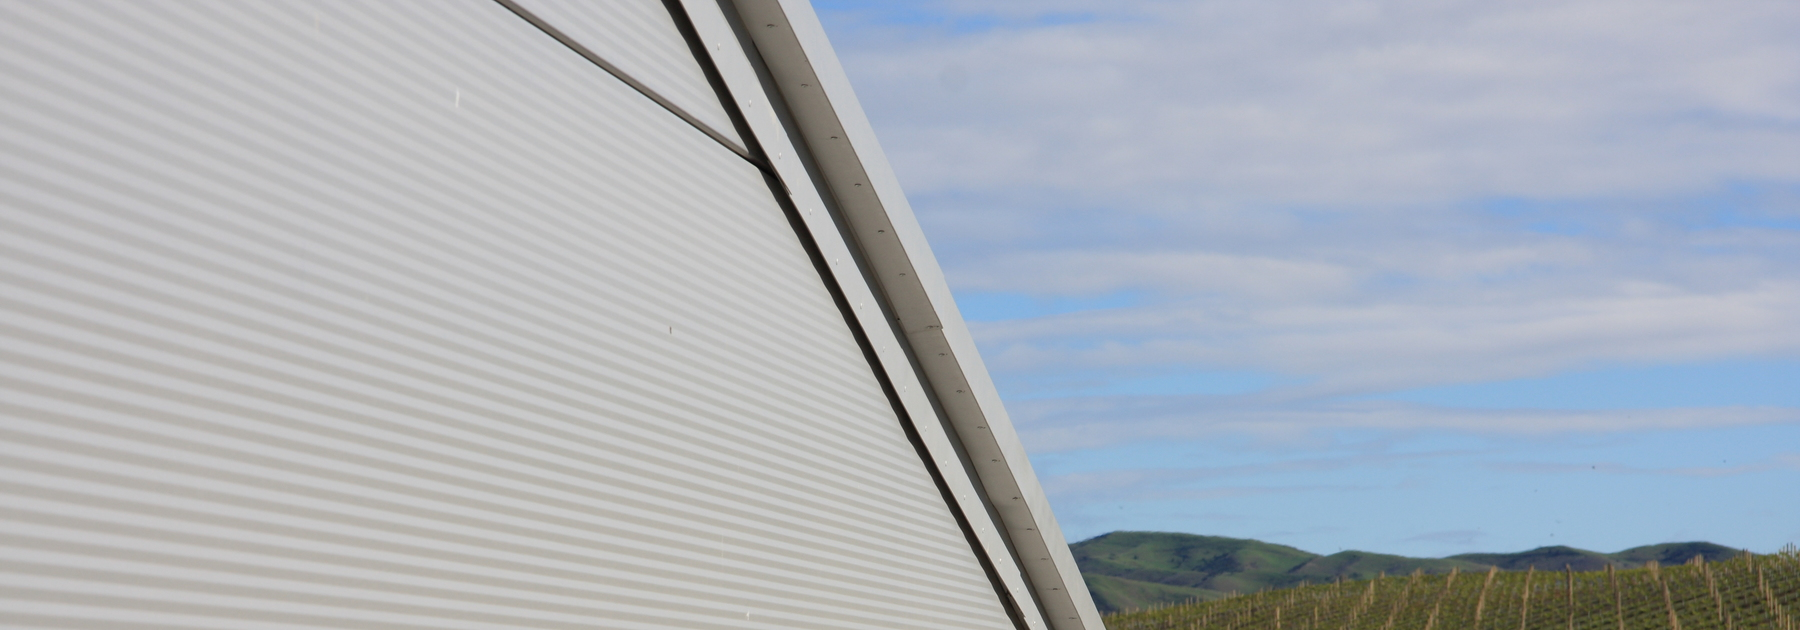 Kingspan Insulated Panel Systems Project YEALANDS ESTATE WINERY NZ Image